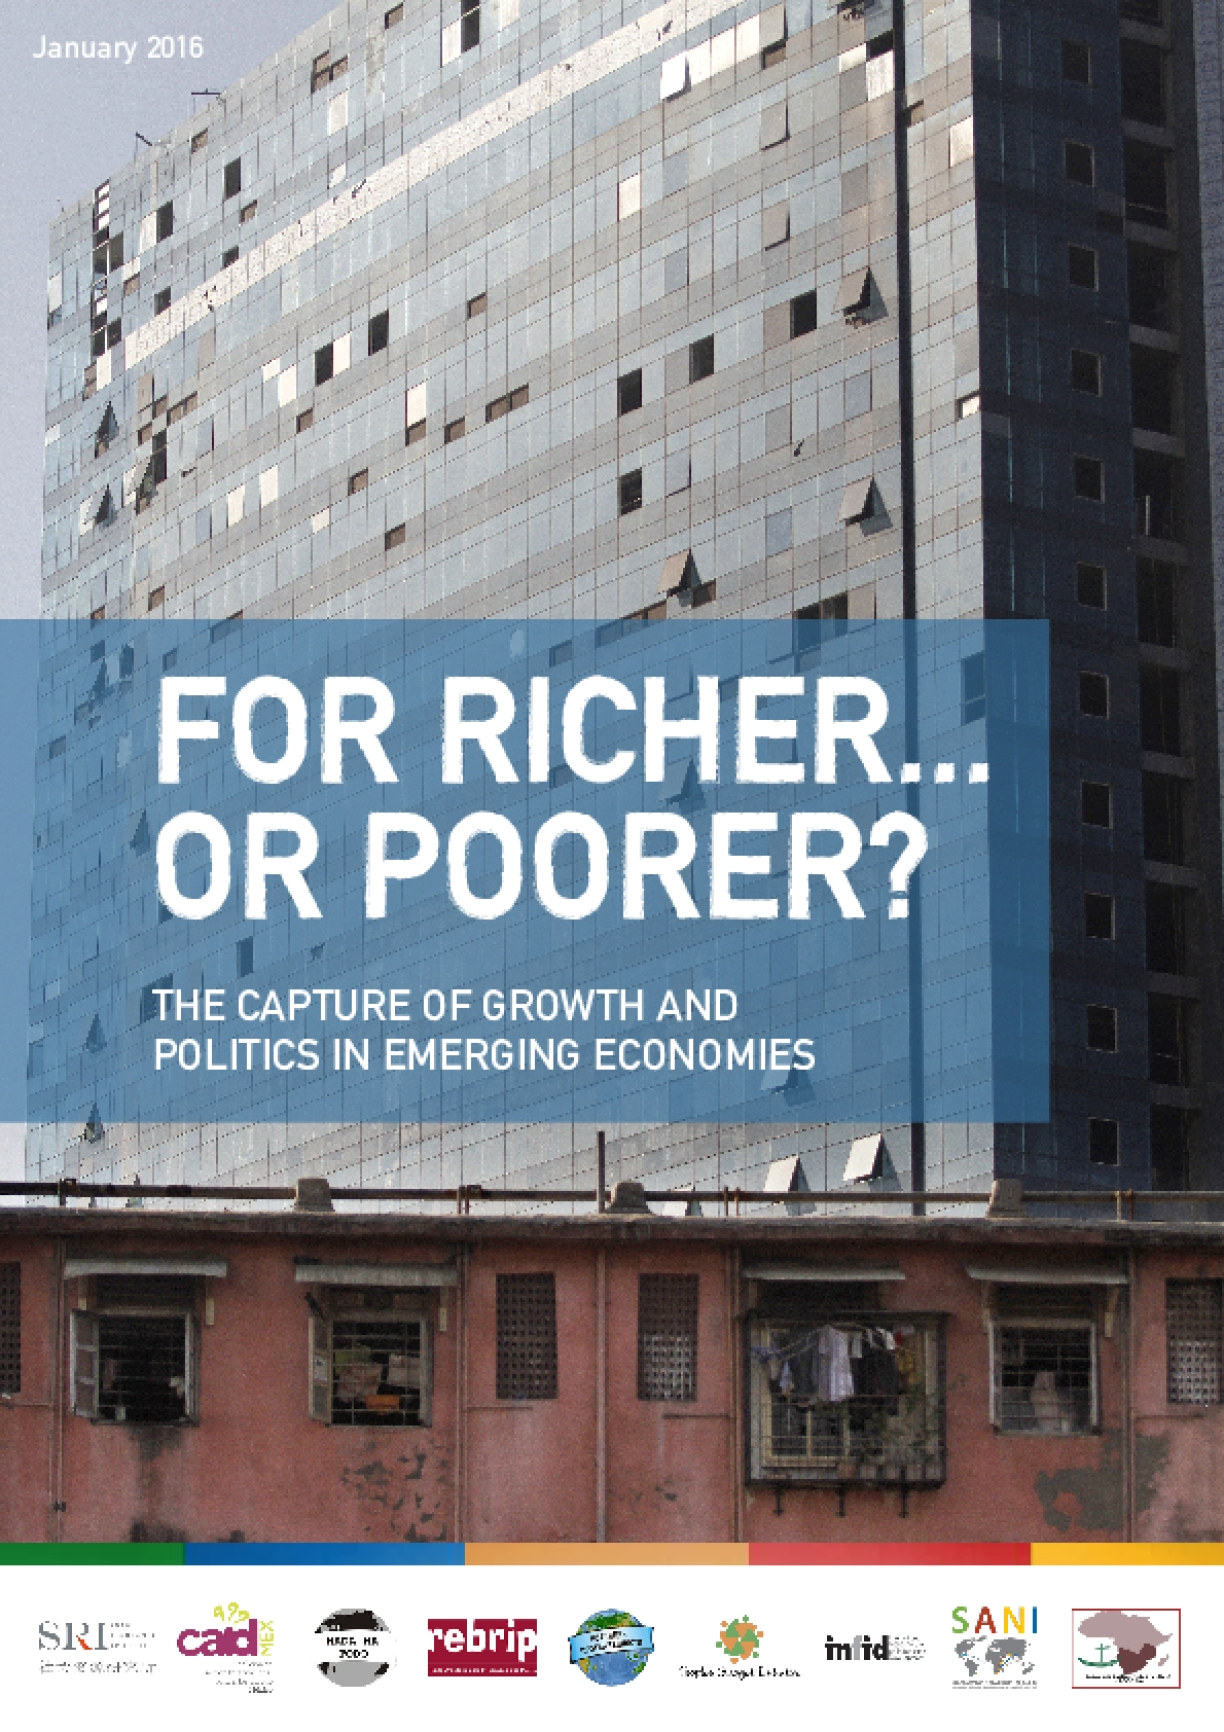 For Richer or Poorer: The Capture of Growth and Politics in Emerging Economies